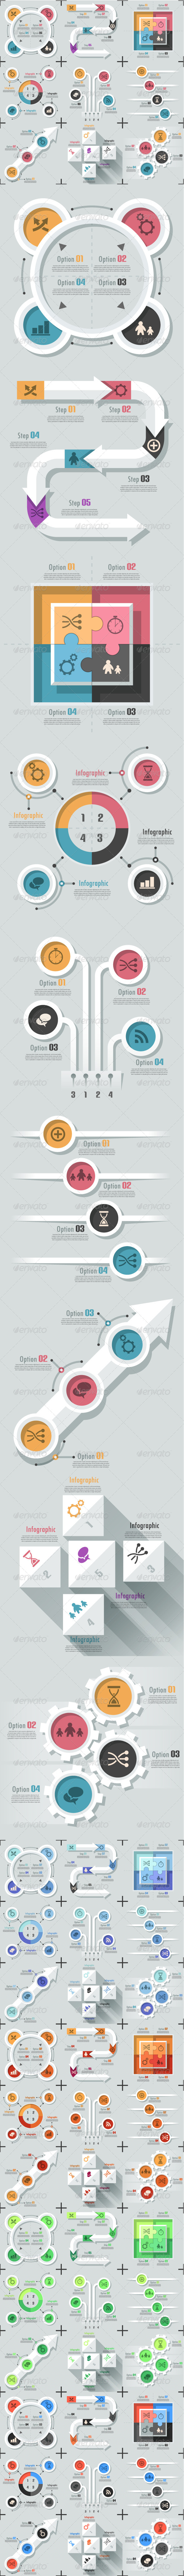 Set Of 9 Flat Infographic Options Templates